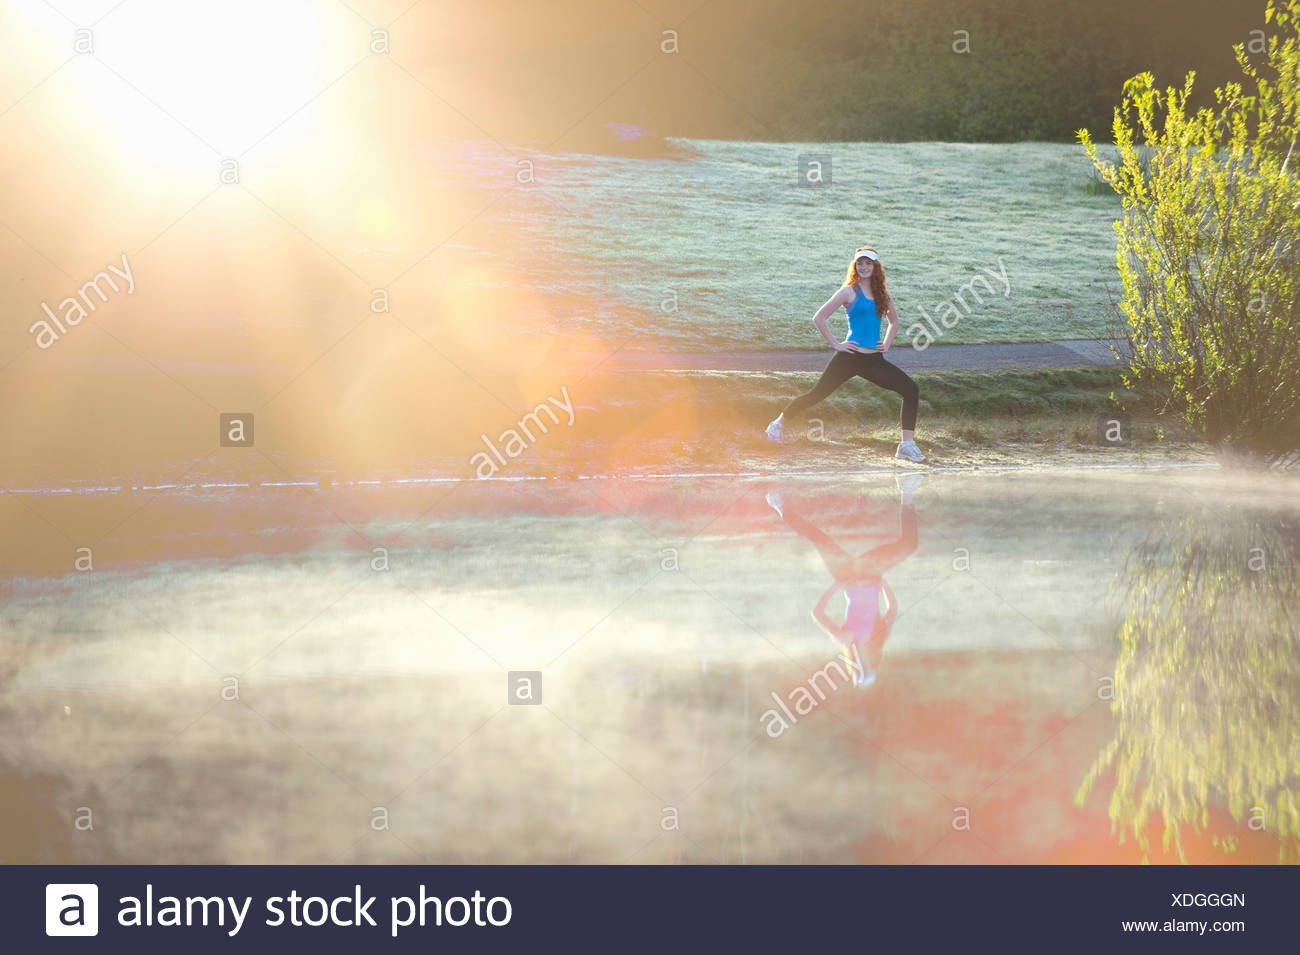 Teenage girl stretching by misty lake in sunlight - Stock Image